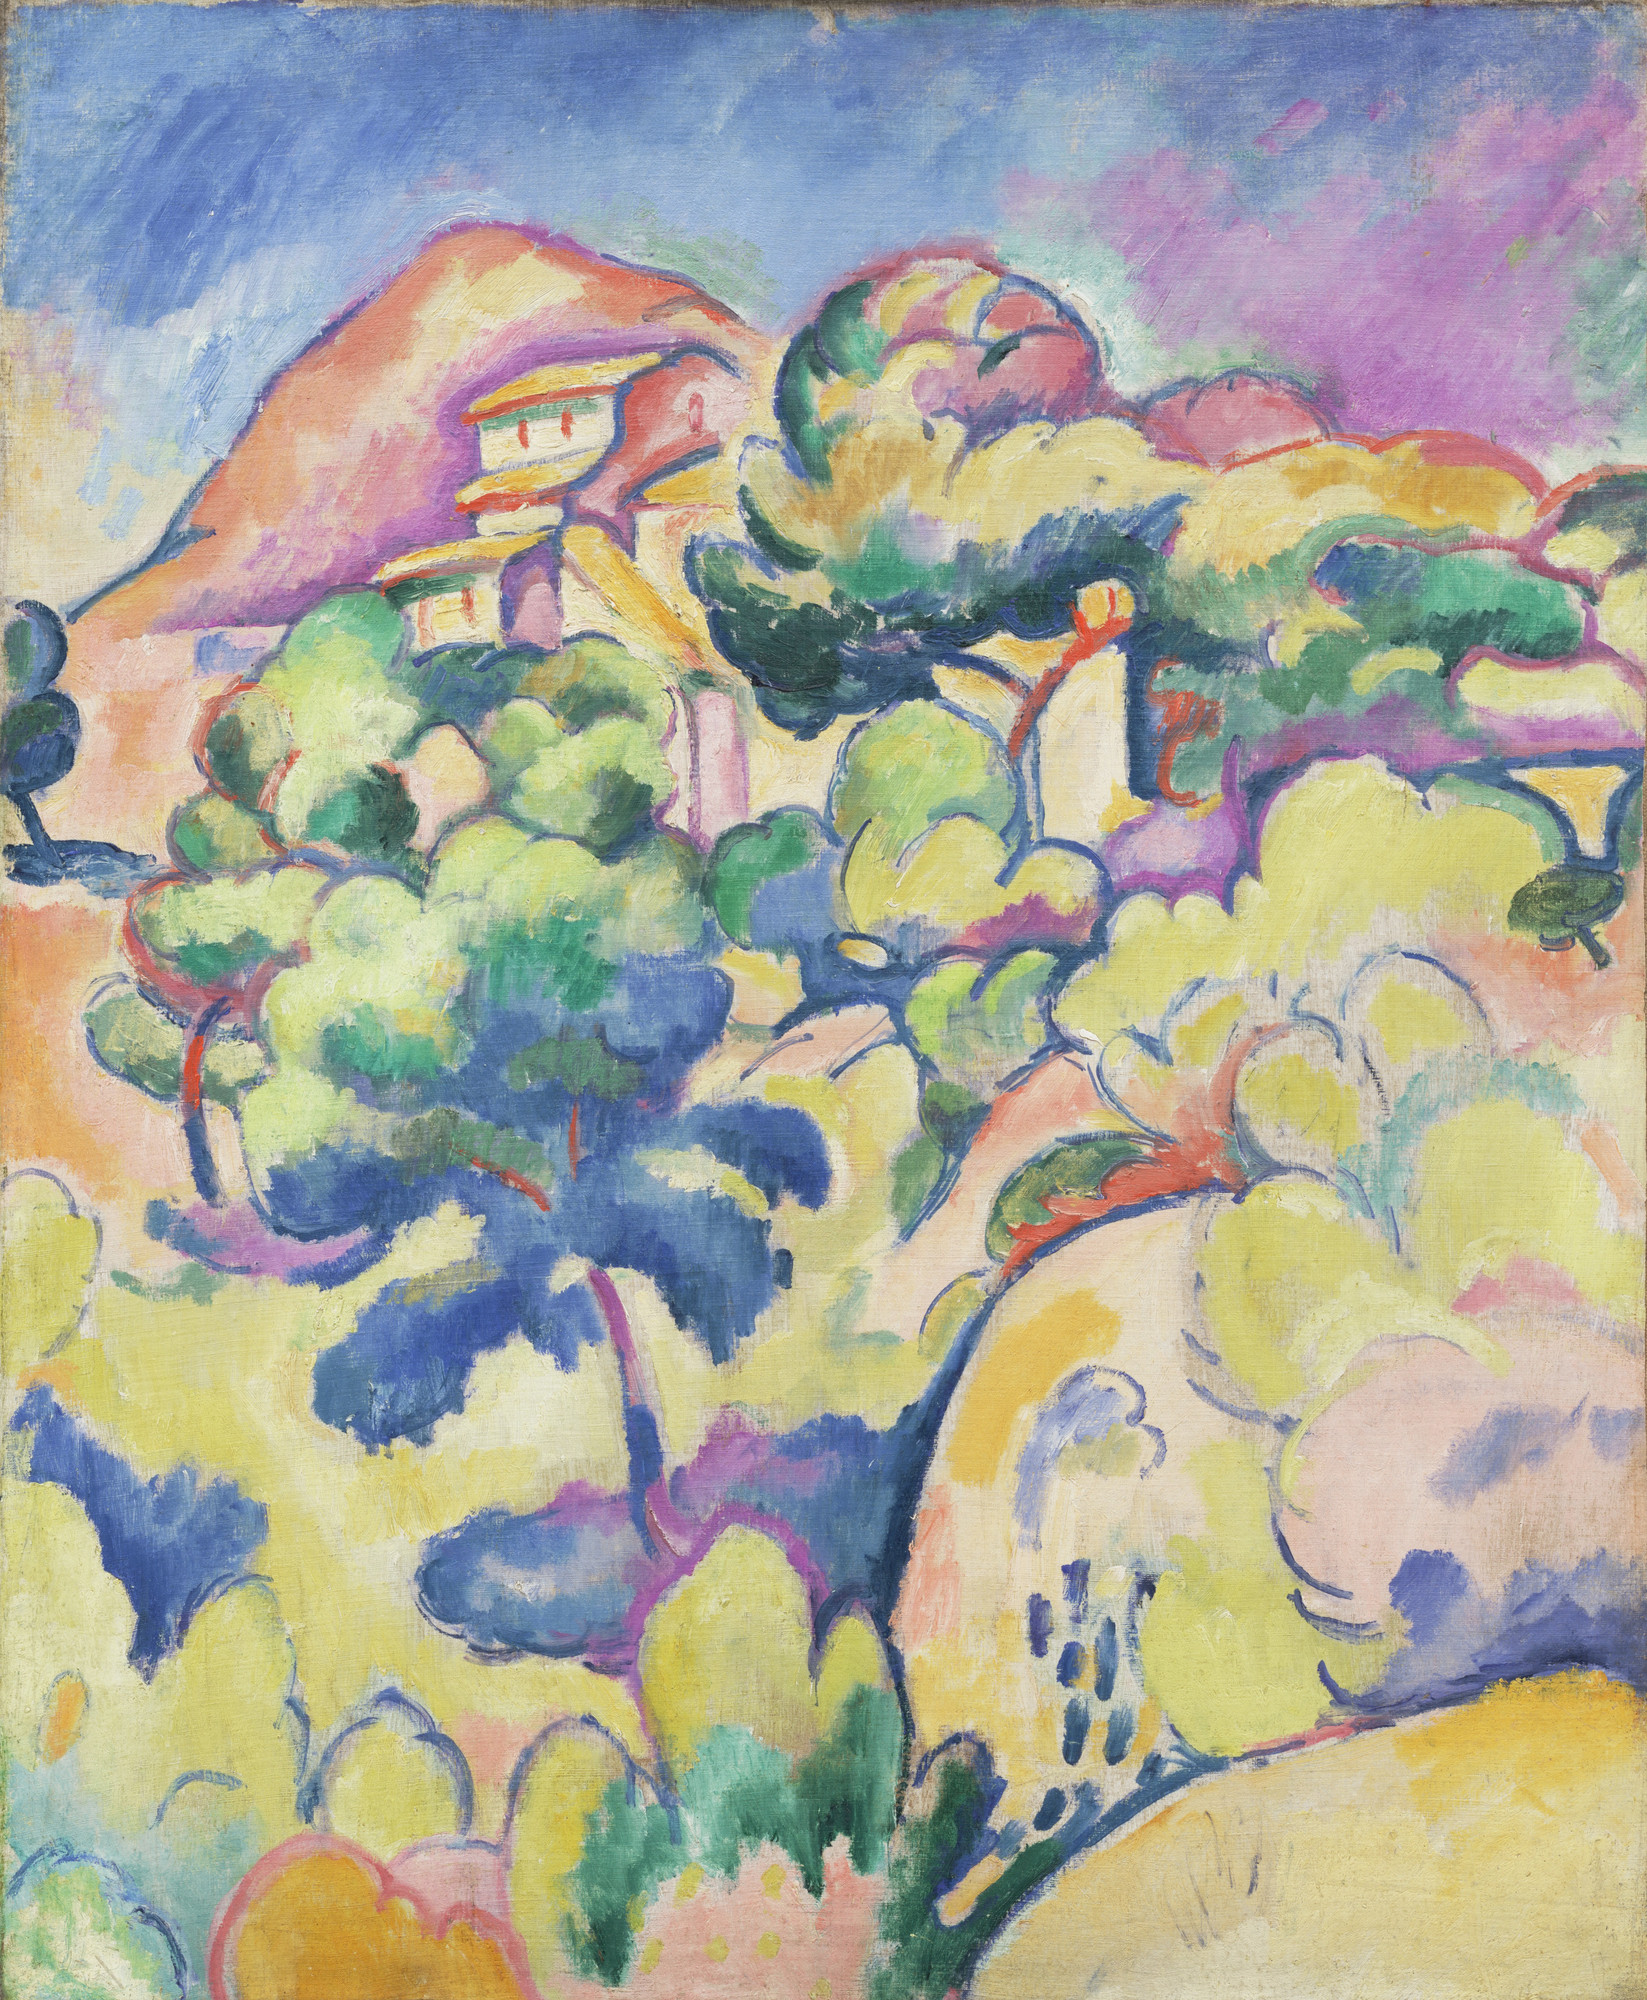 Georges Braque. Landscape at La Ciotat. La Ciotat, summer 1907